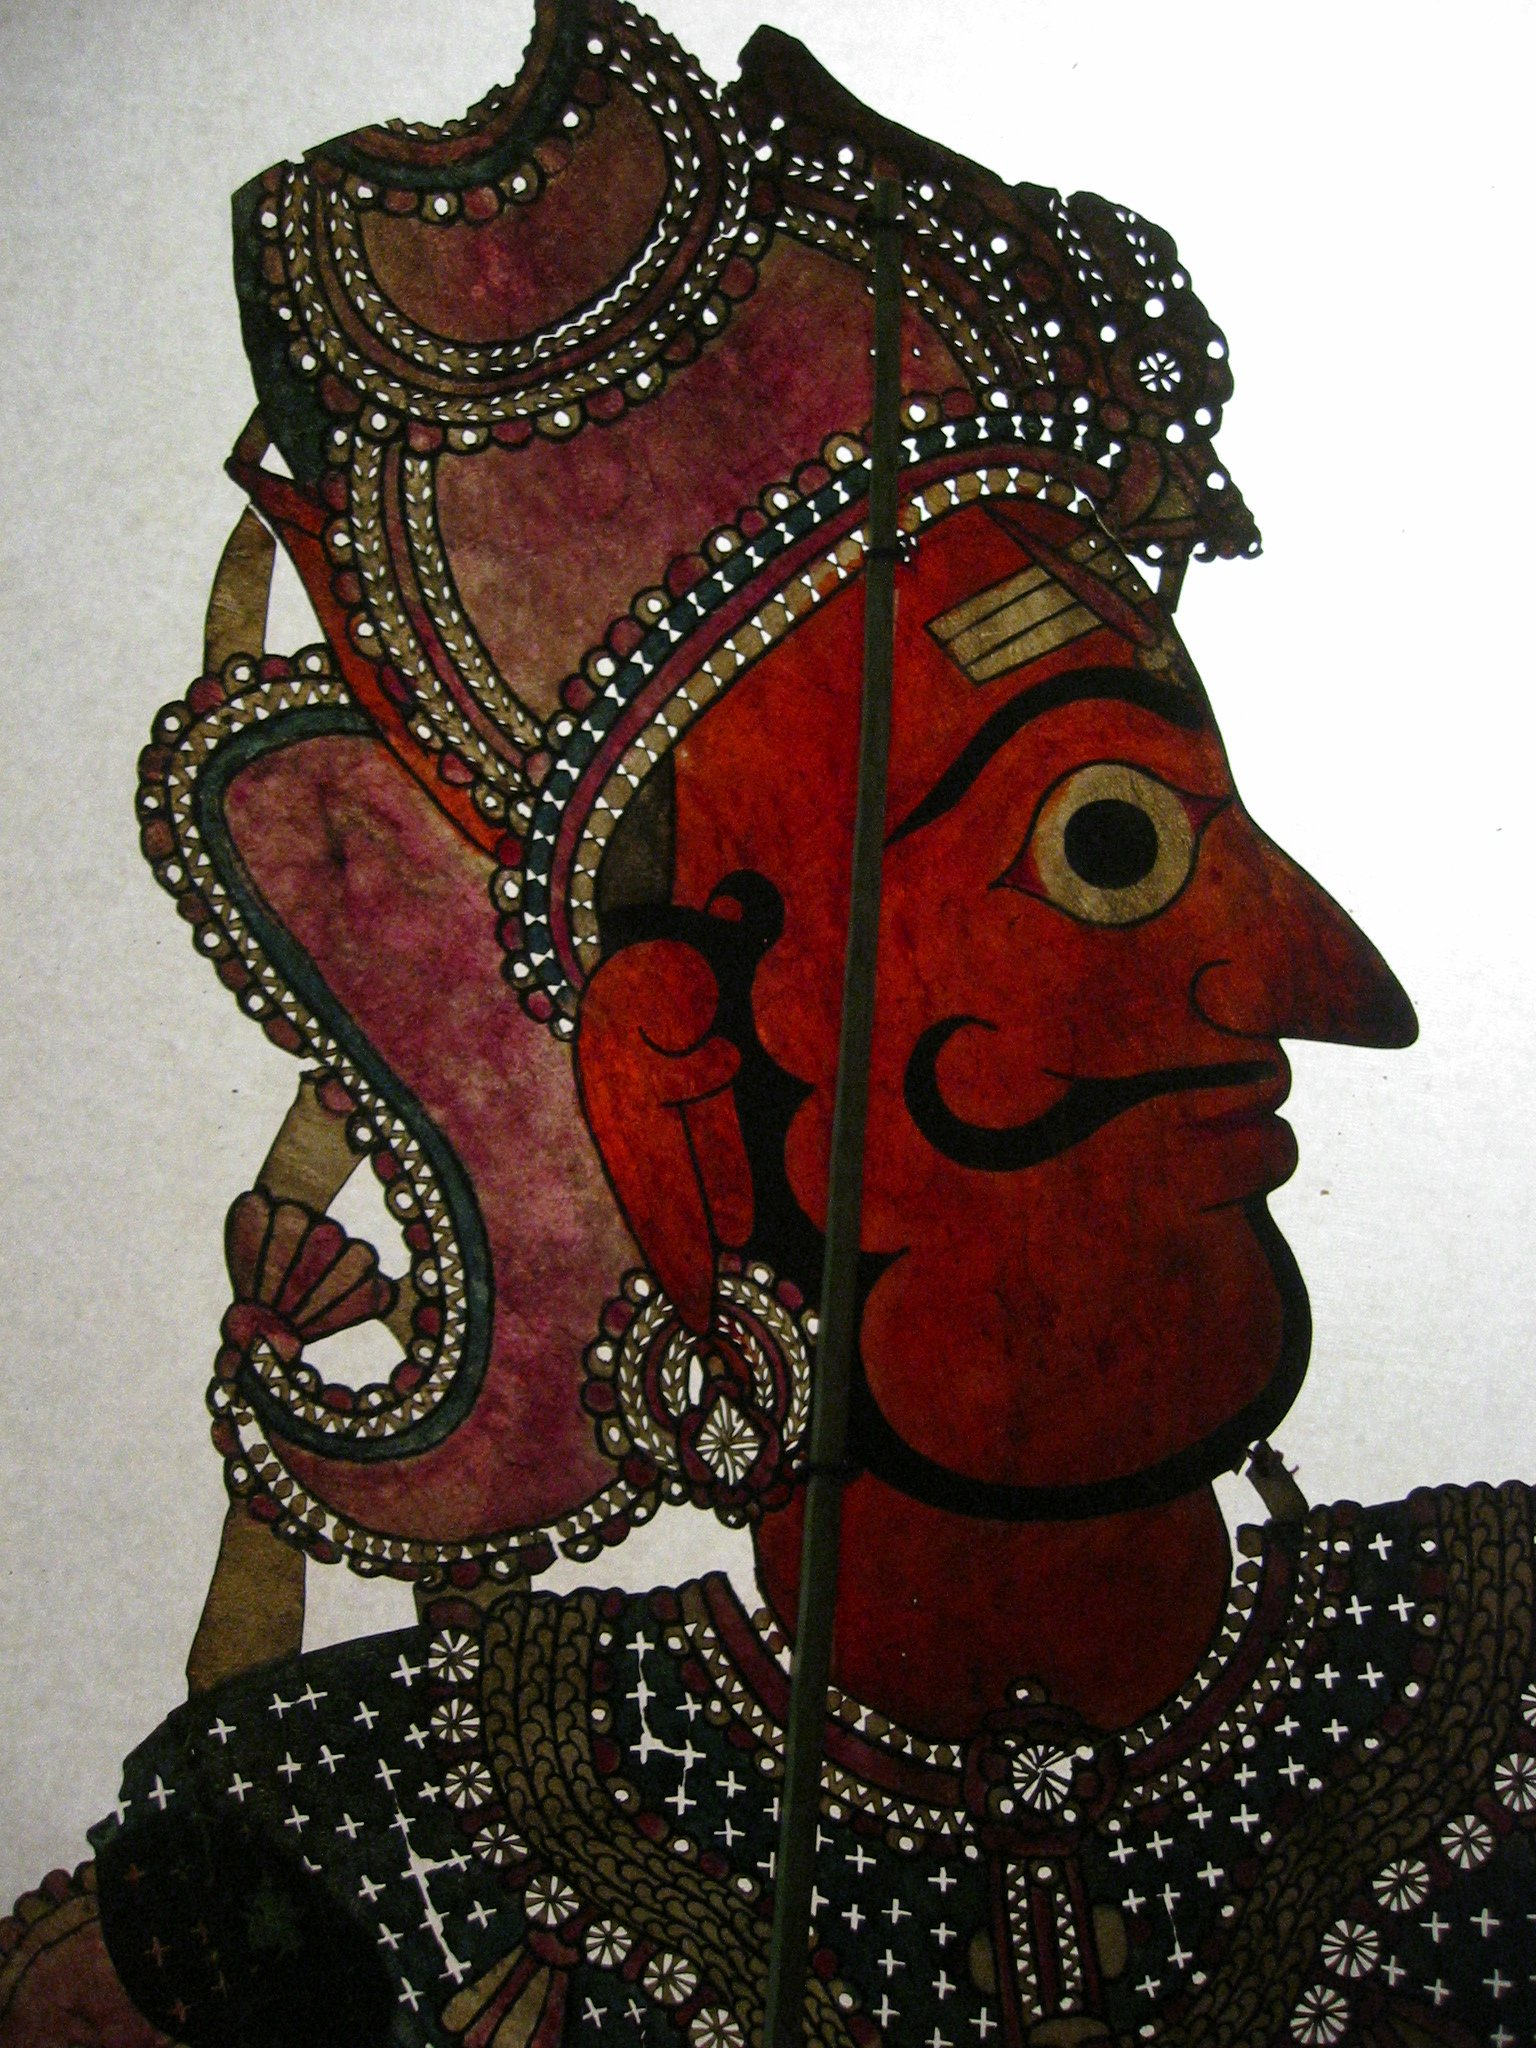 Un détail, Râma, une figure d'ombre d'Andhra Pradesh, en Inde, tolu bommalata, hauteur : 1,10 m. Collection : Center for Puppetry Arts (Atlanta, Géorgie, États-Unis)